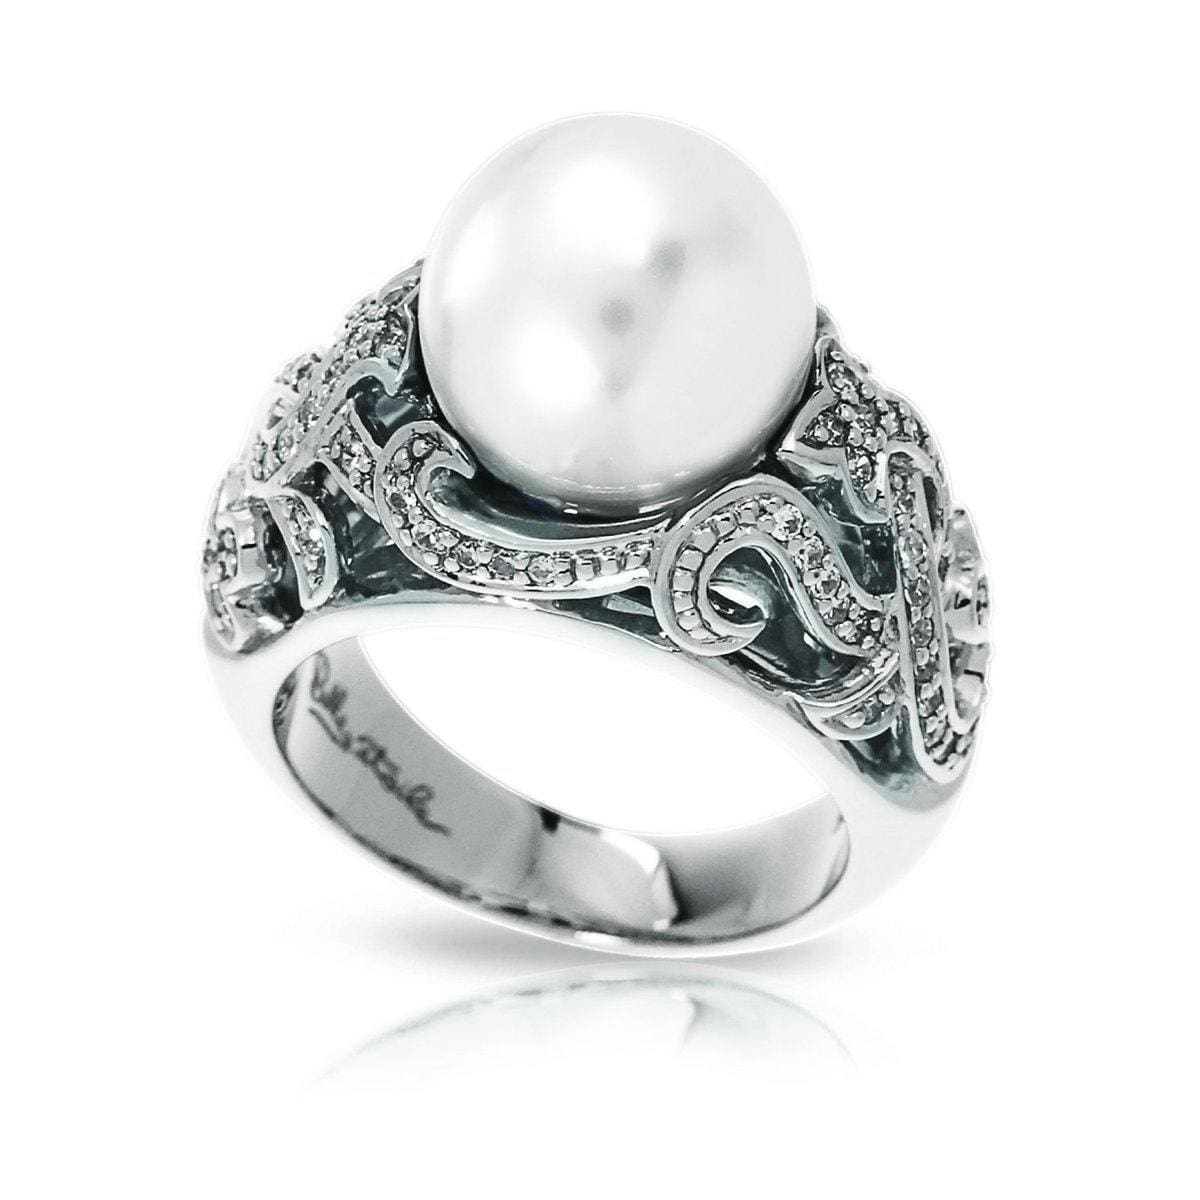 Fiona White Ring